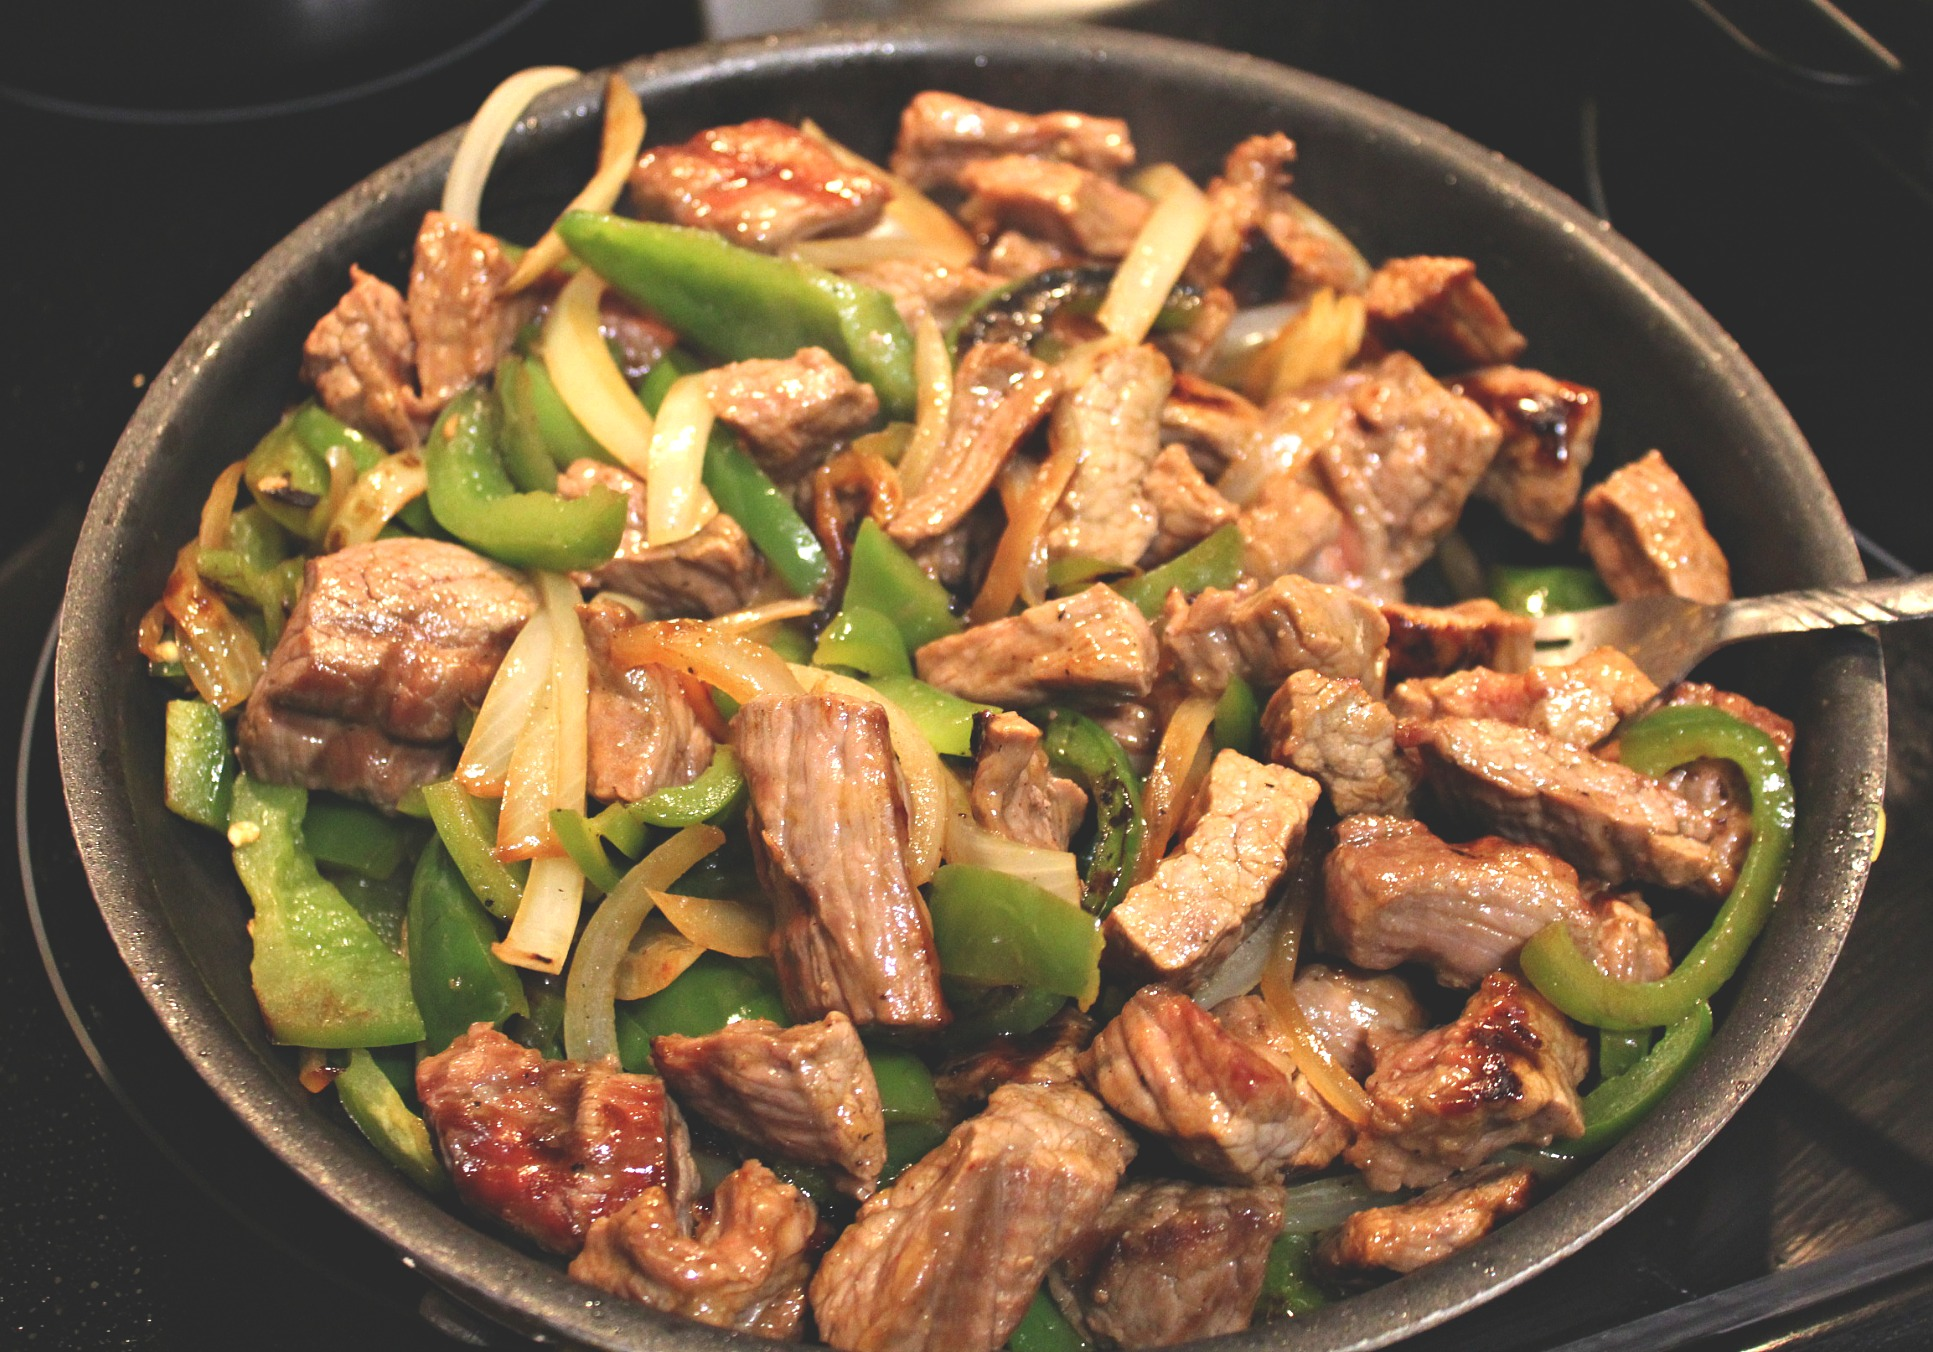 lettuce wrap steak fajitas